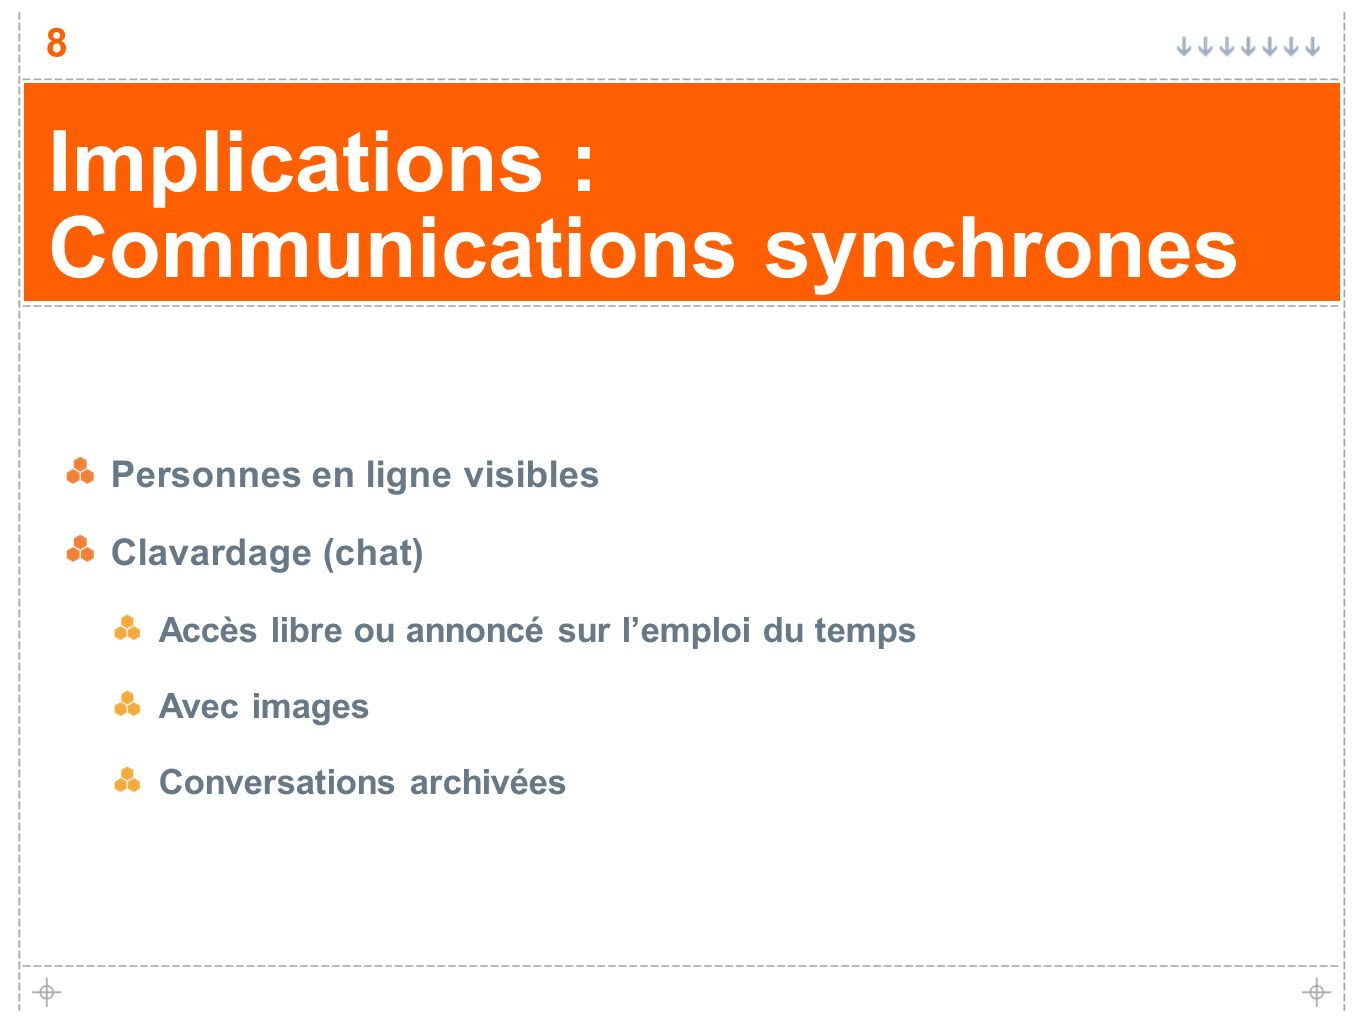 Implications : Communications synchrones